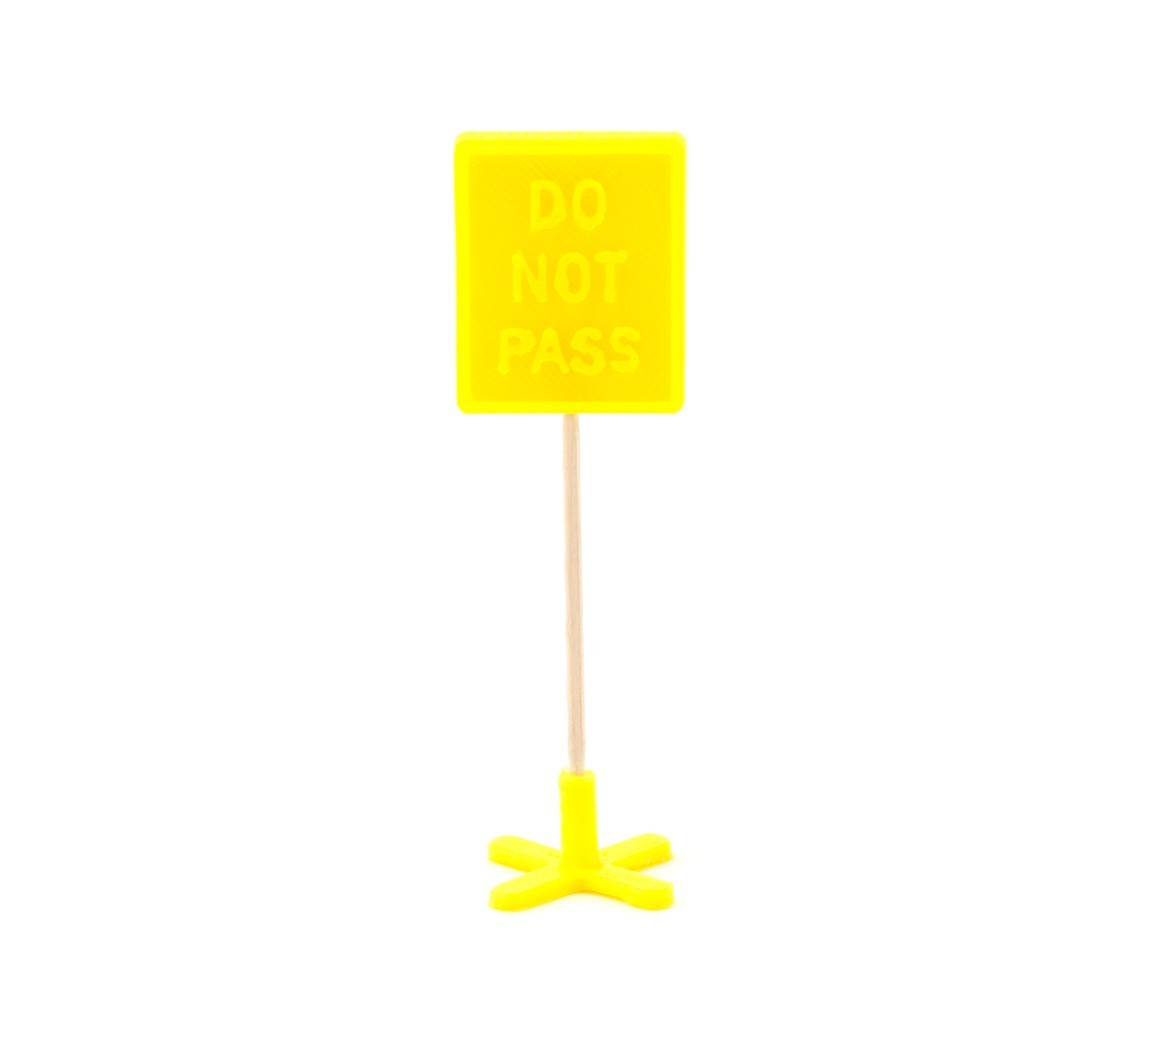 dad355512933513adea5ab2c47ce22d6_1449531081072_11.20.15-product-shoot-128.jpg Download free STL file Traffic Road Signs • 3D printable template, Emiliano_Brignito